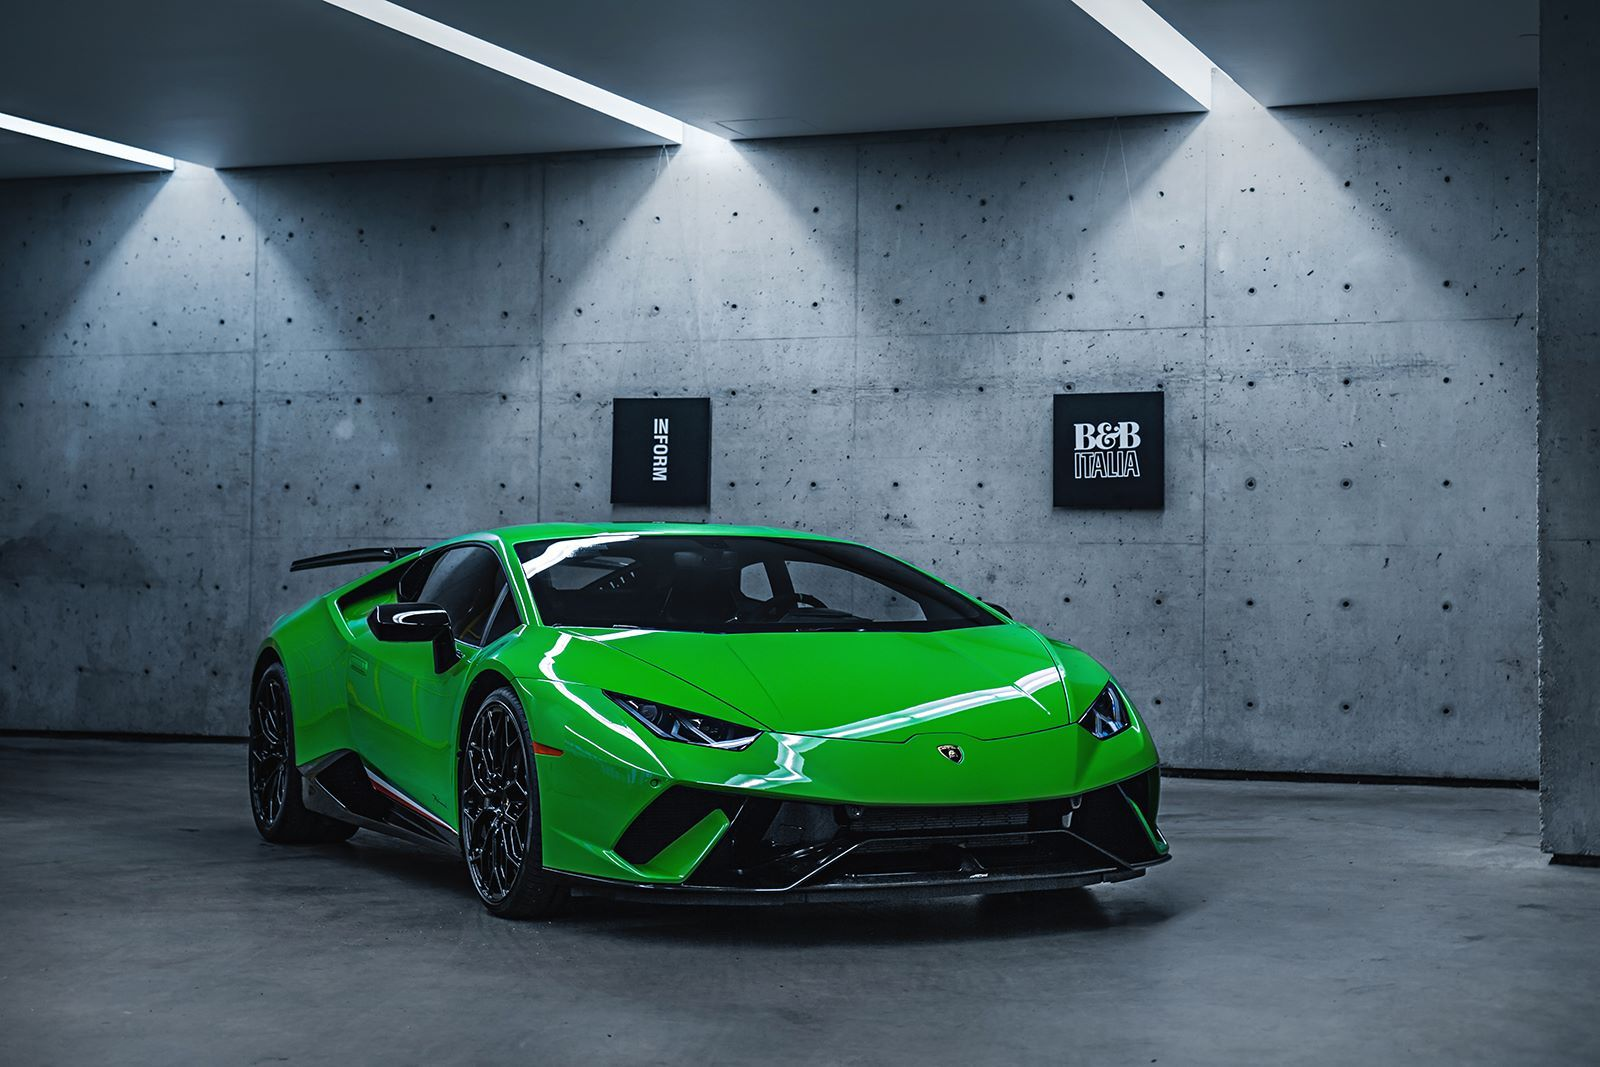 Marcel Lech Photography The King Of The Nurburgring Luxury